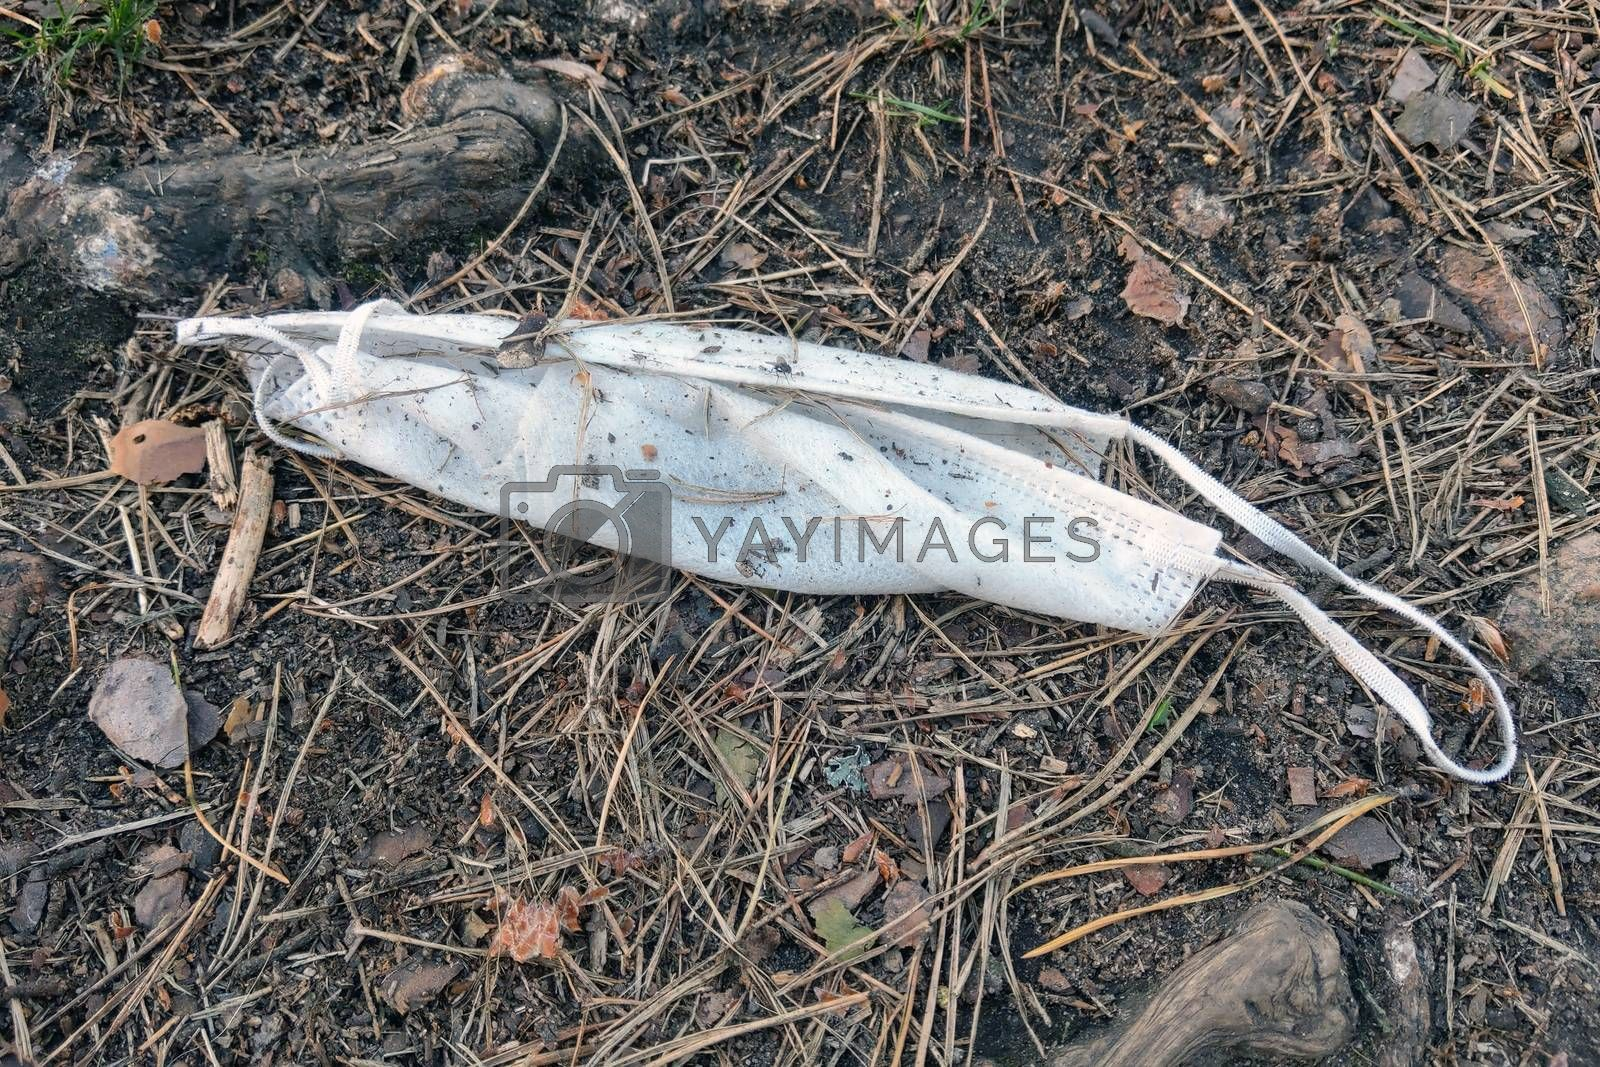 The used medical mask lies on the ground. Environmental pollution. Coronavirus protection